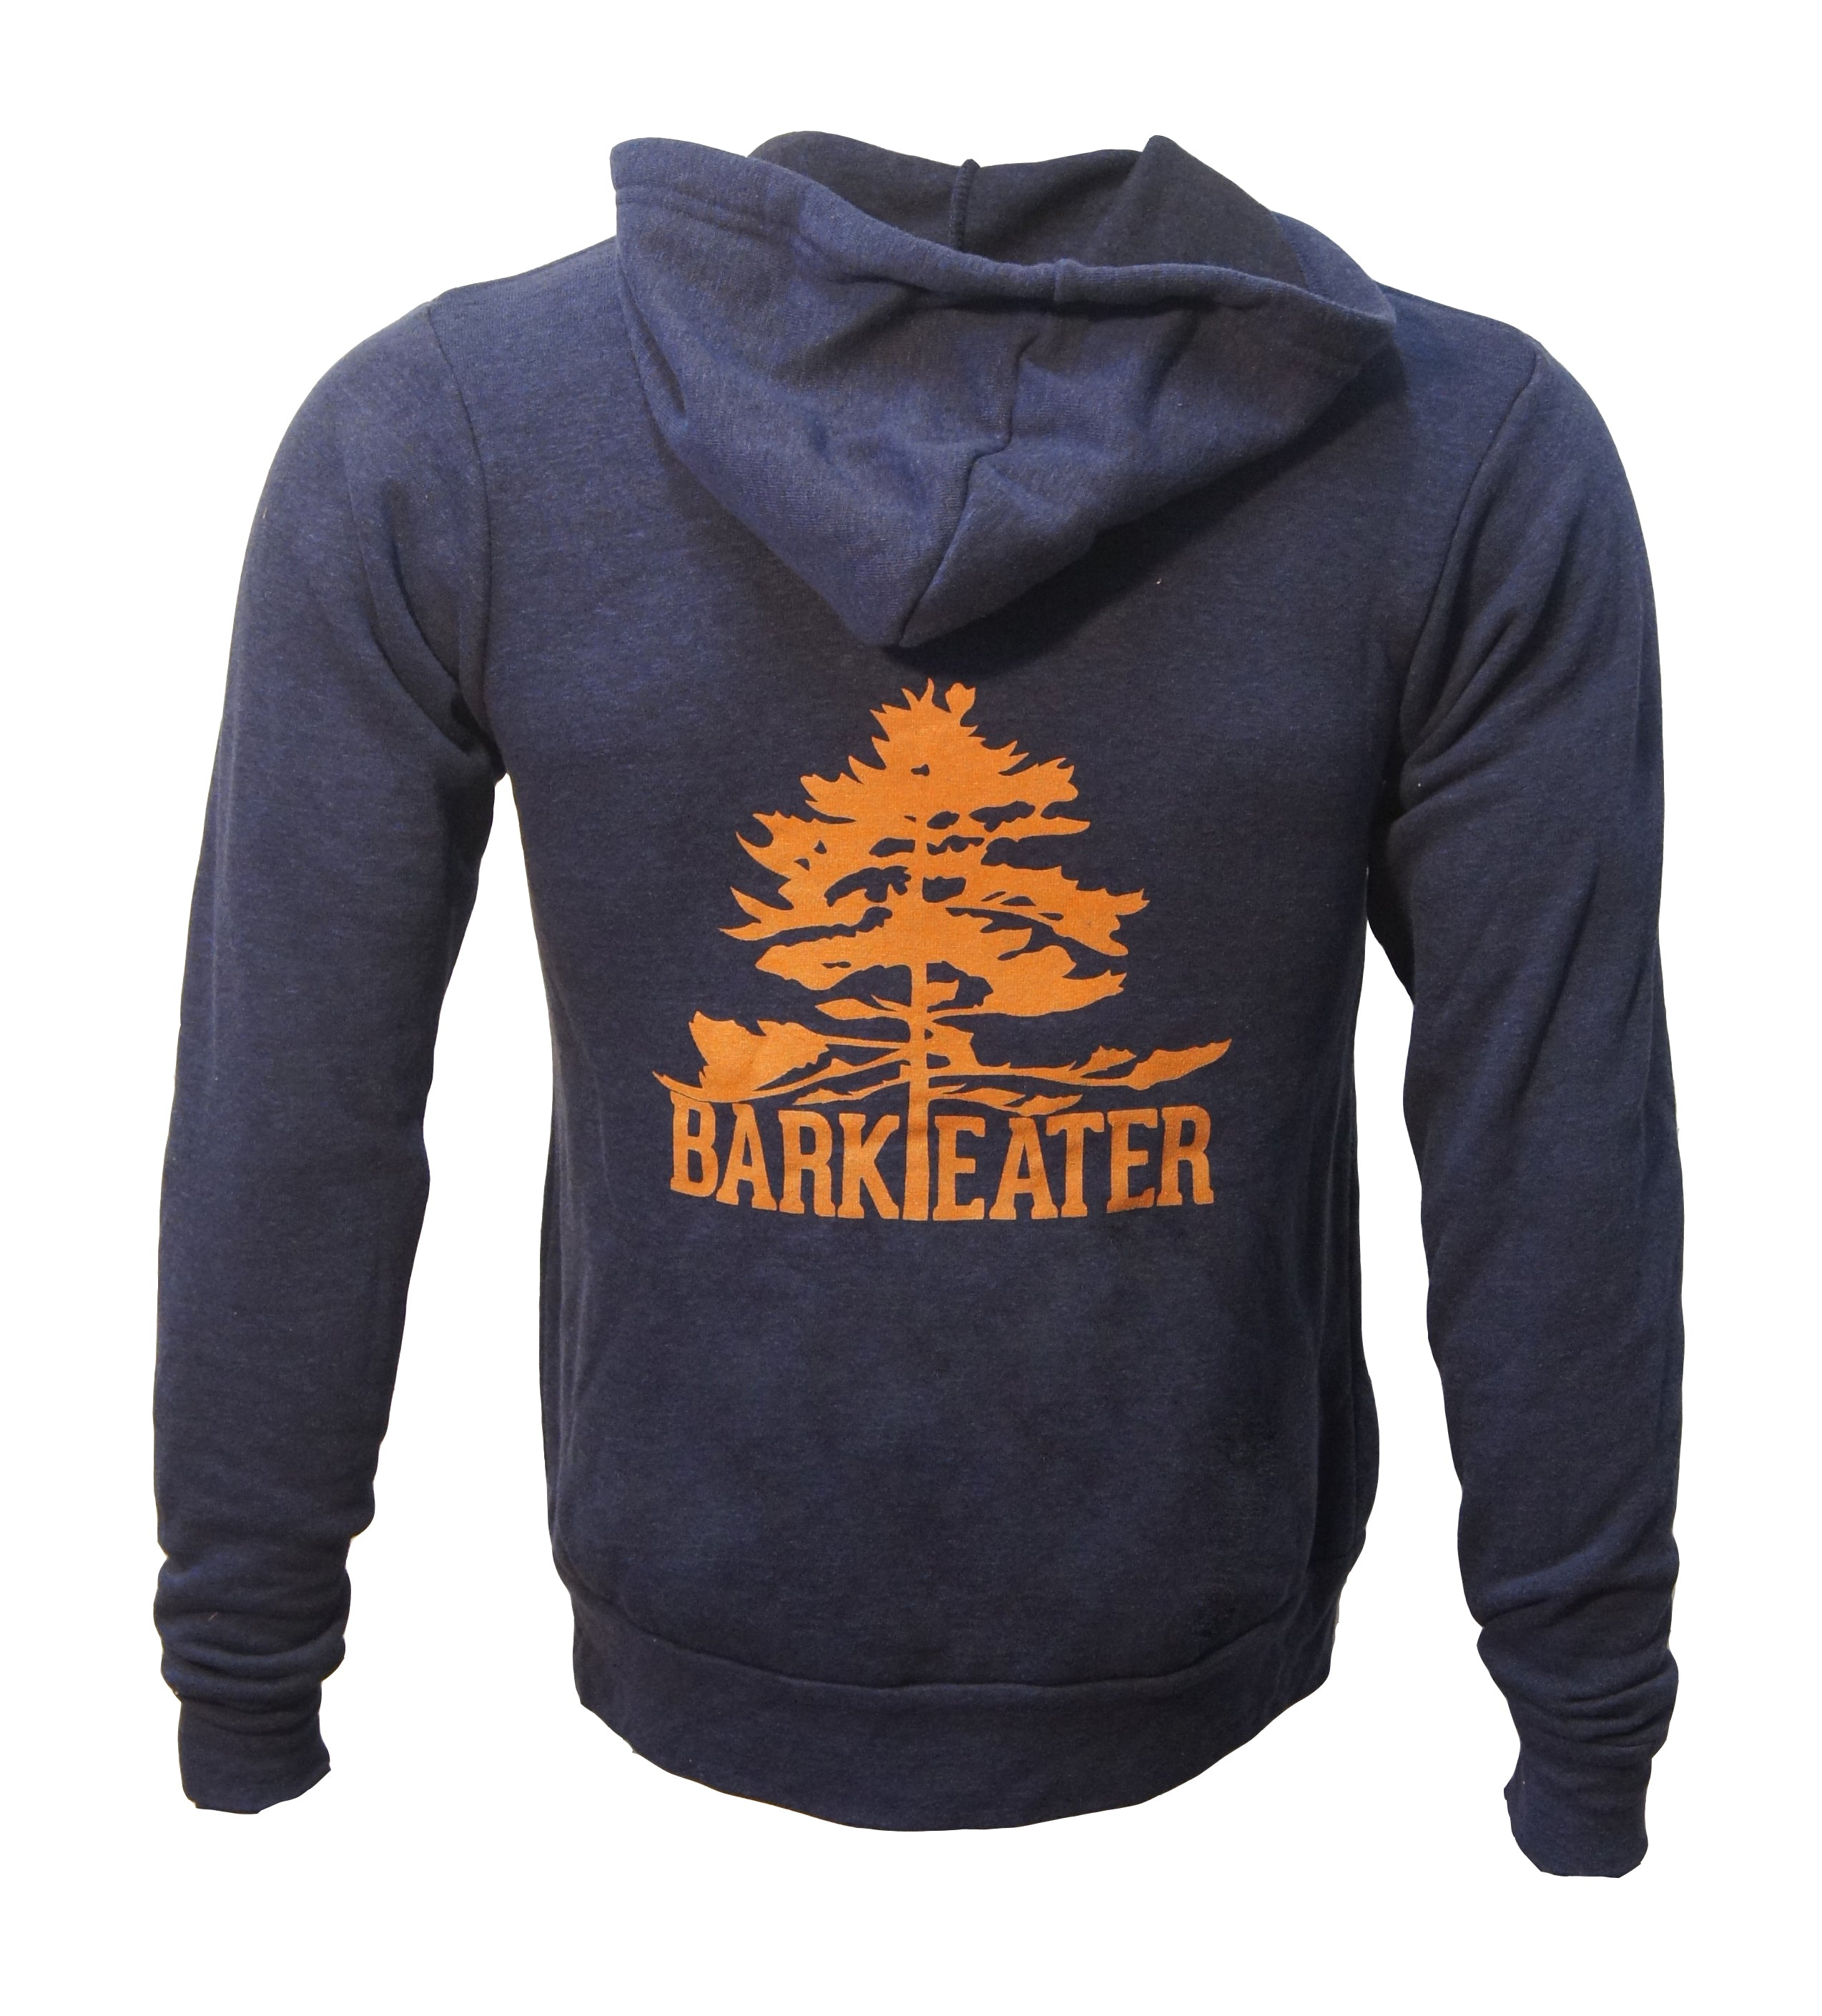 Navy blue pullover sweatshirt with burnt orange Bark Eater log on the back.  Great year-round Adirondack apparel!